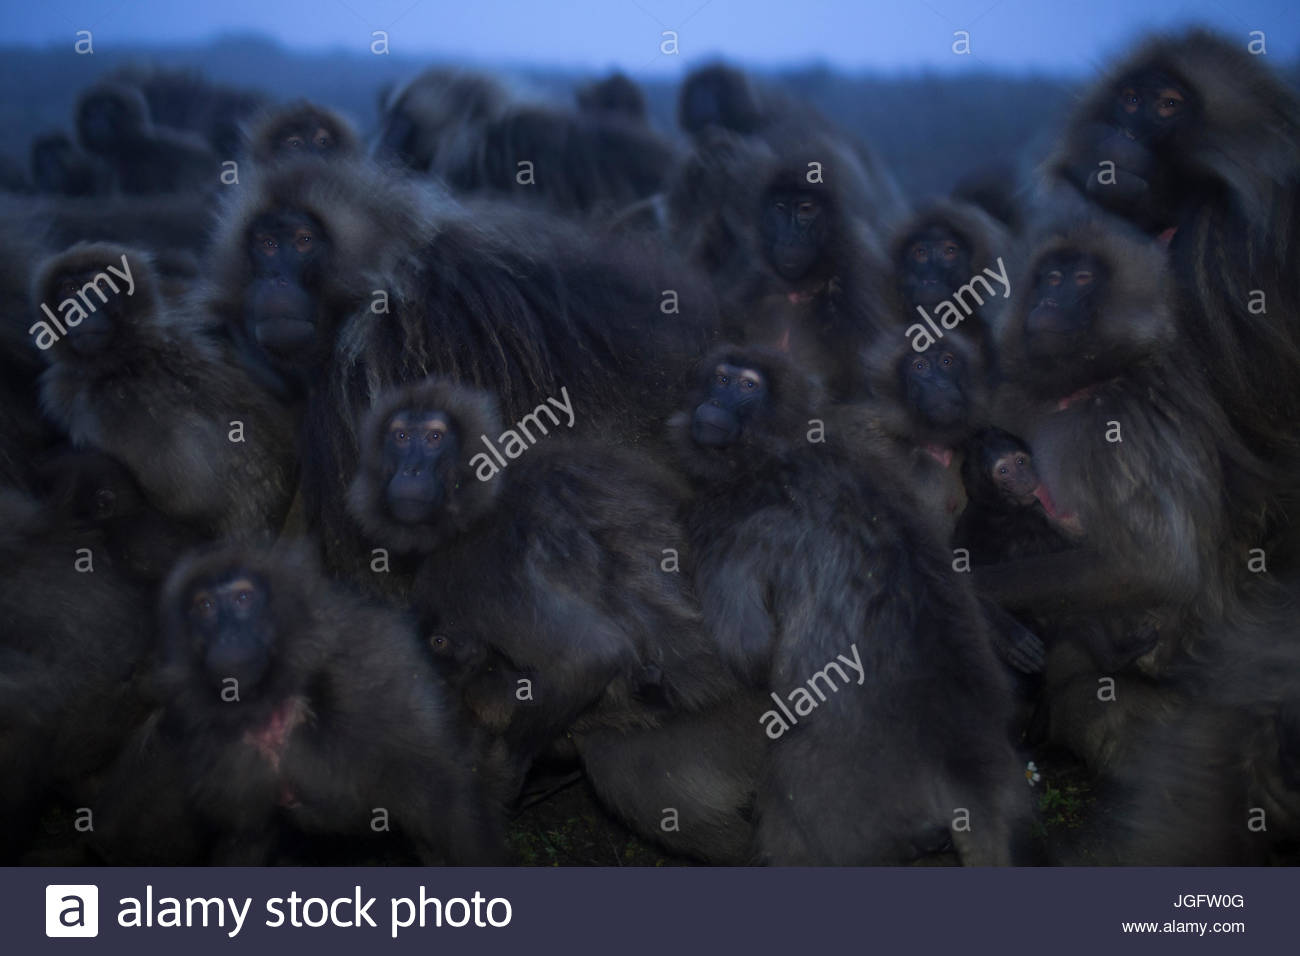 When fog blankets the grasslands, predators emerge and geladas often form groups with all eyes facing outwards looking - Stock Image